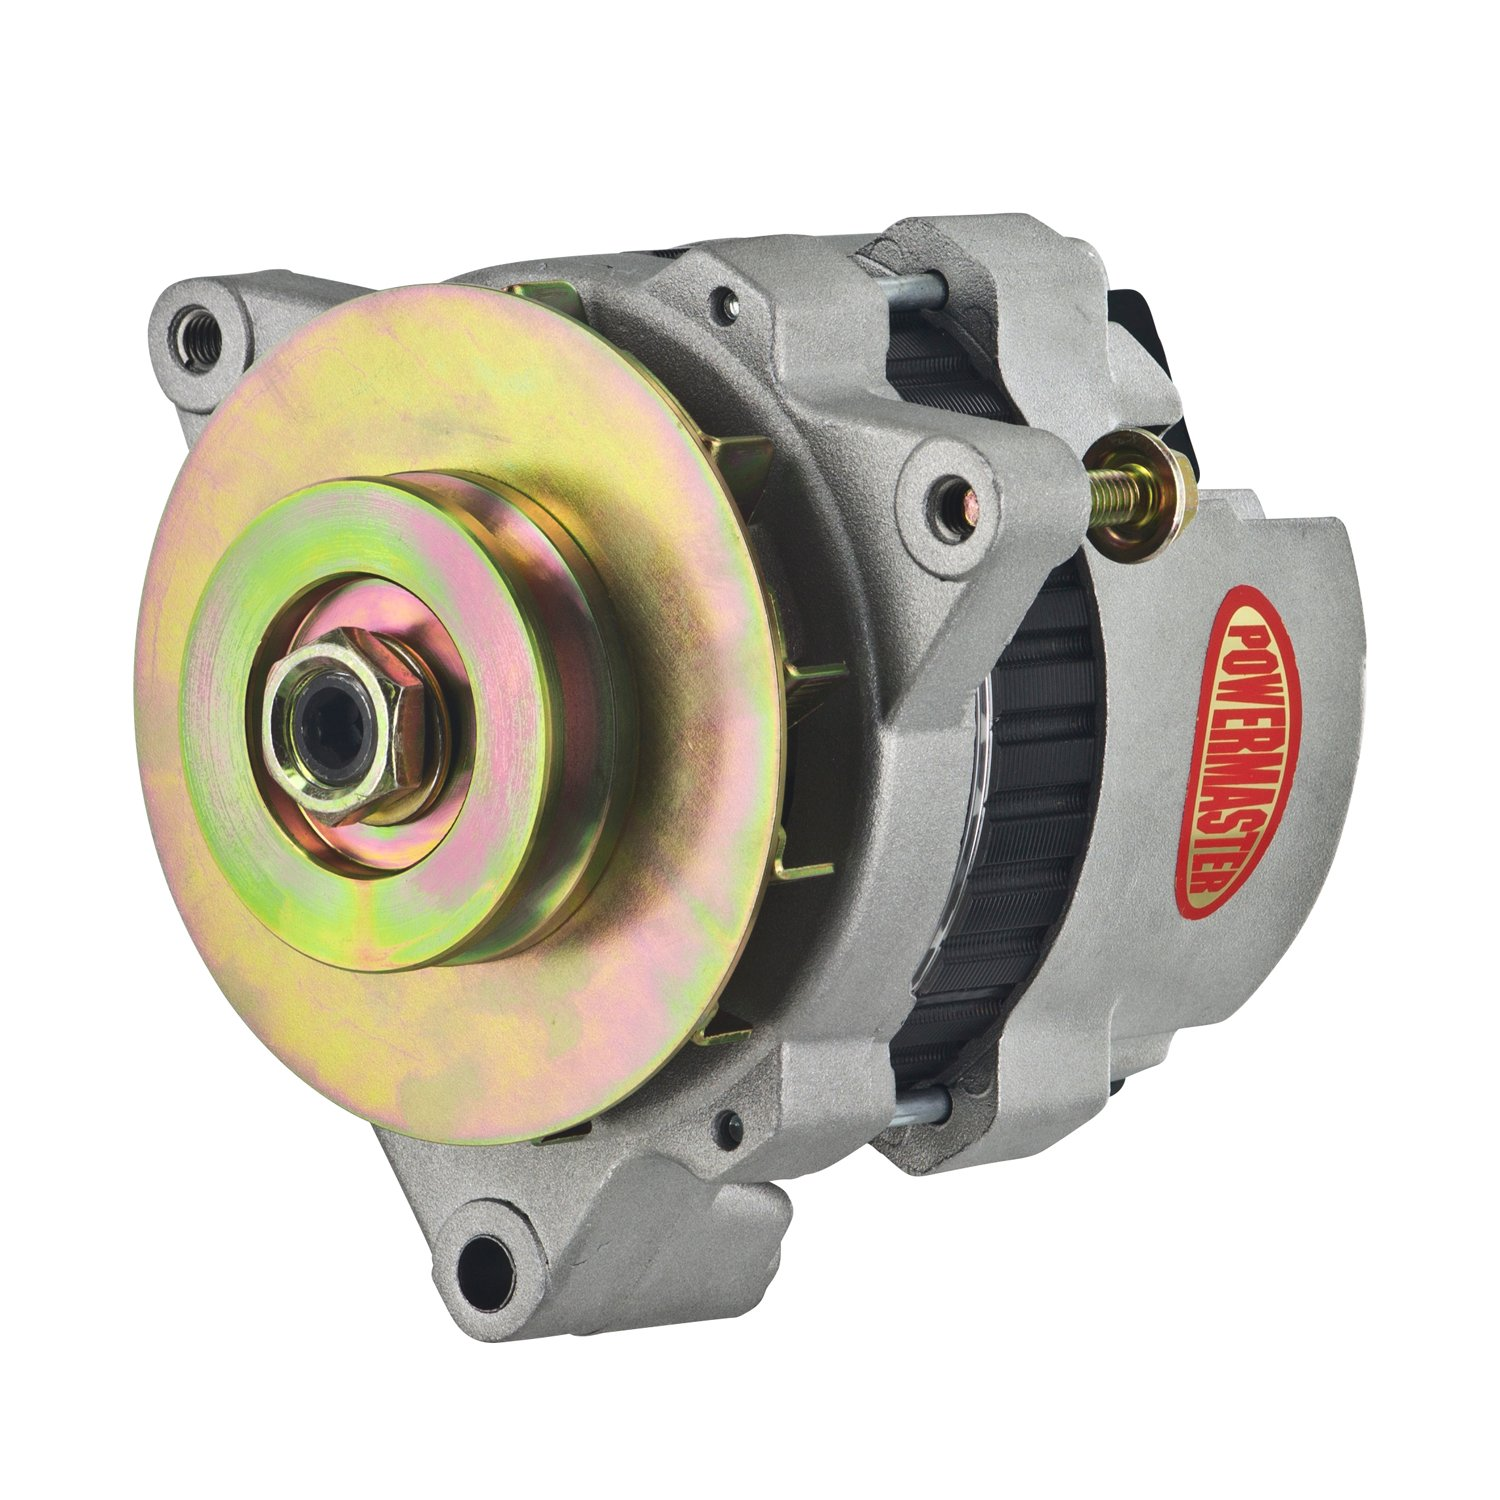 Powermaster 7472 - GM 5x5 Compact Race Alternators